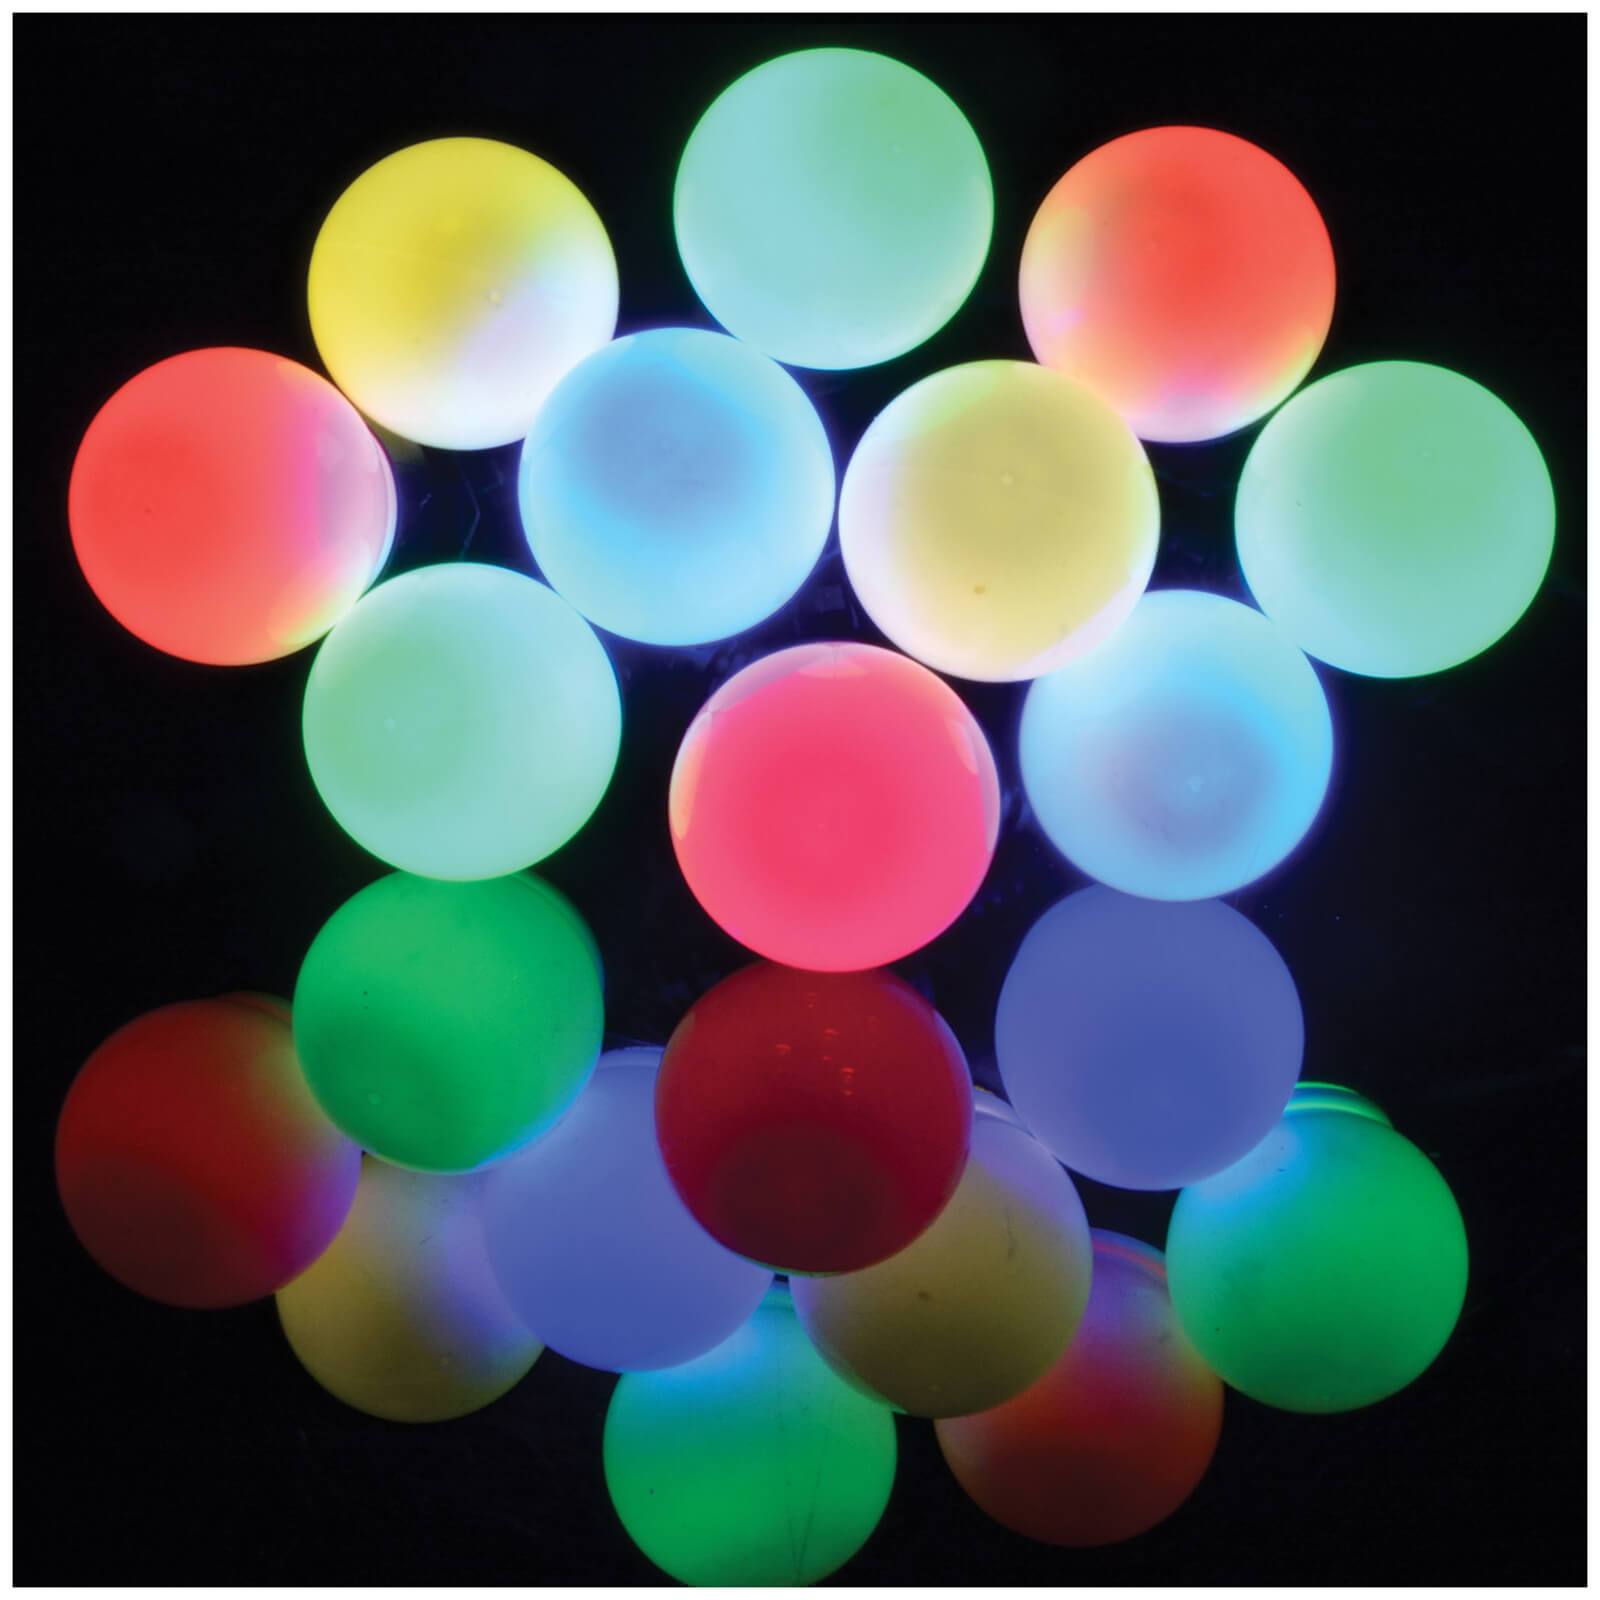 Lyyt 10 Bauble Outdoor Festoon LED Lights - Multicolour